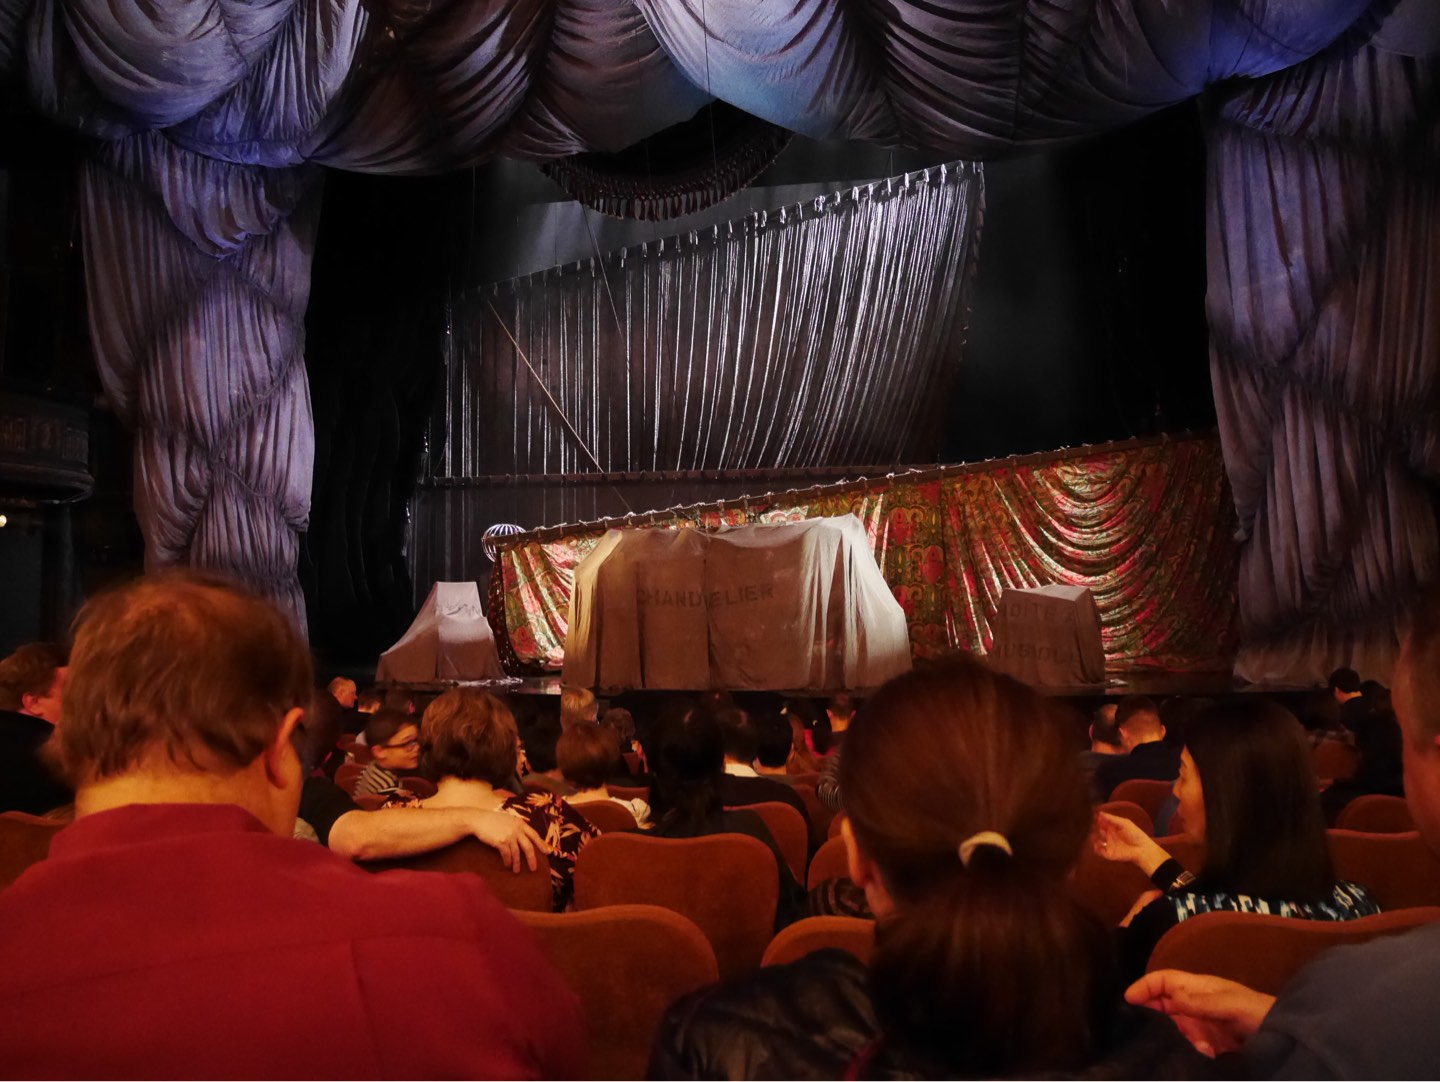 Majestic Theatre Section Orchestra C Row H Seat 111